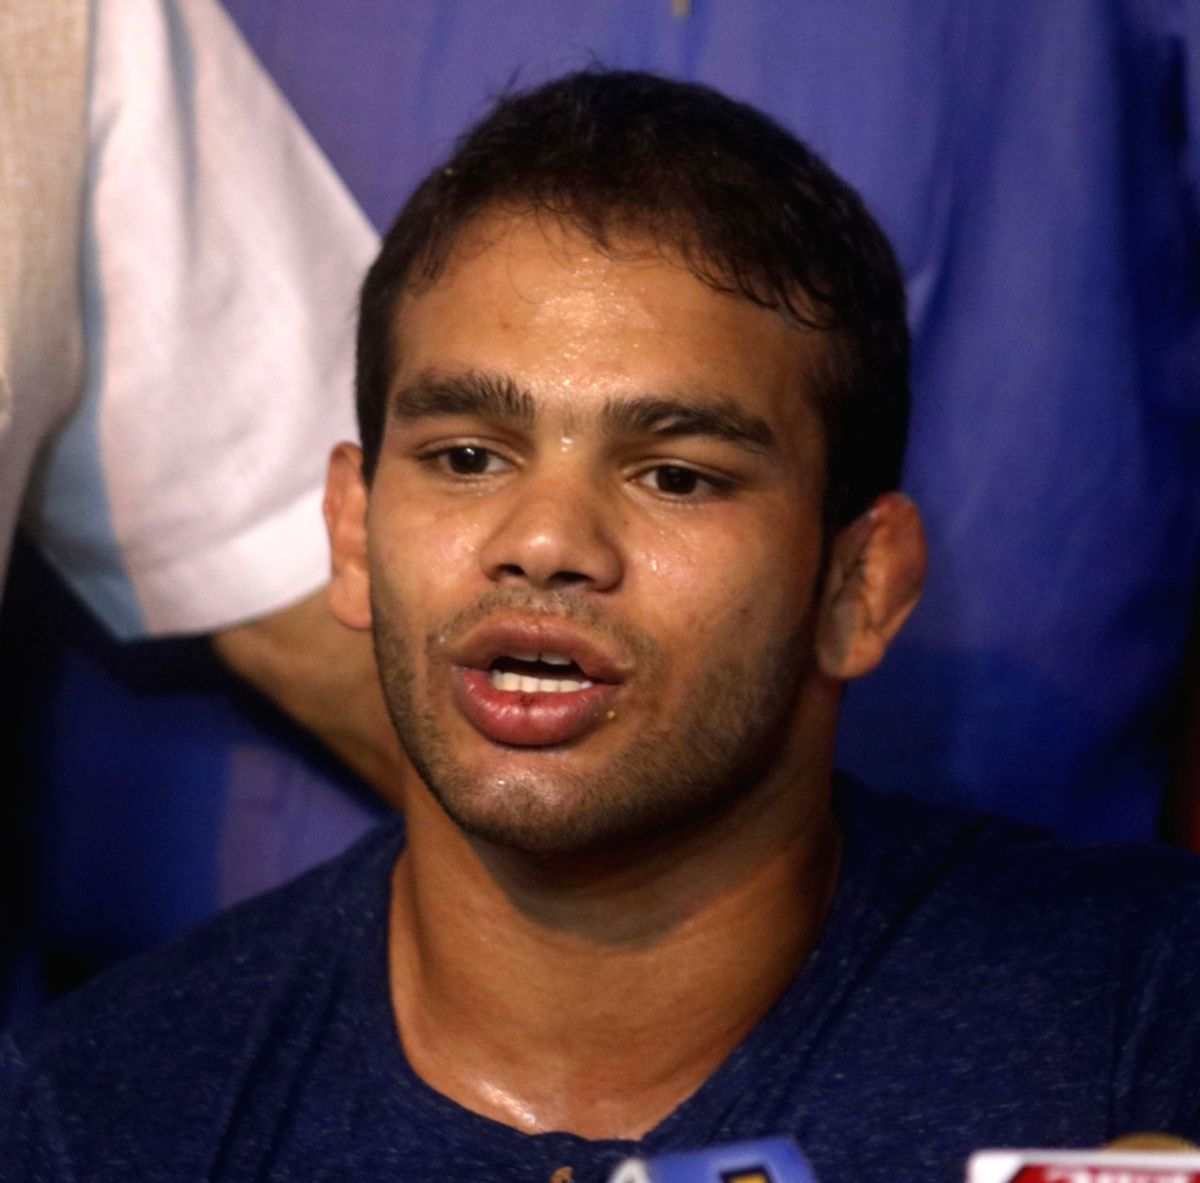 Sushil vs Narsingh fight very much on the cards, says WFI